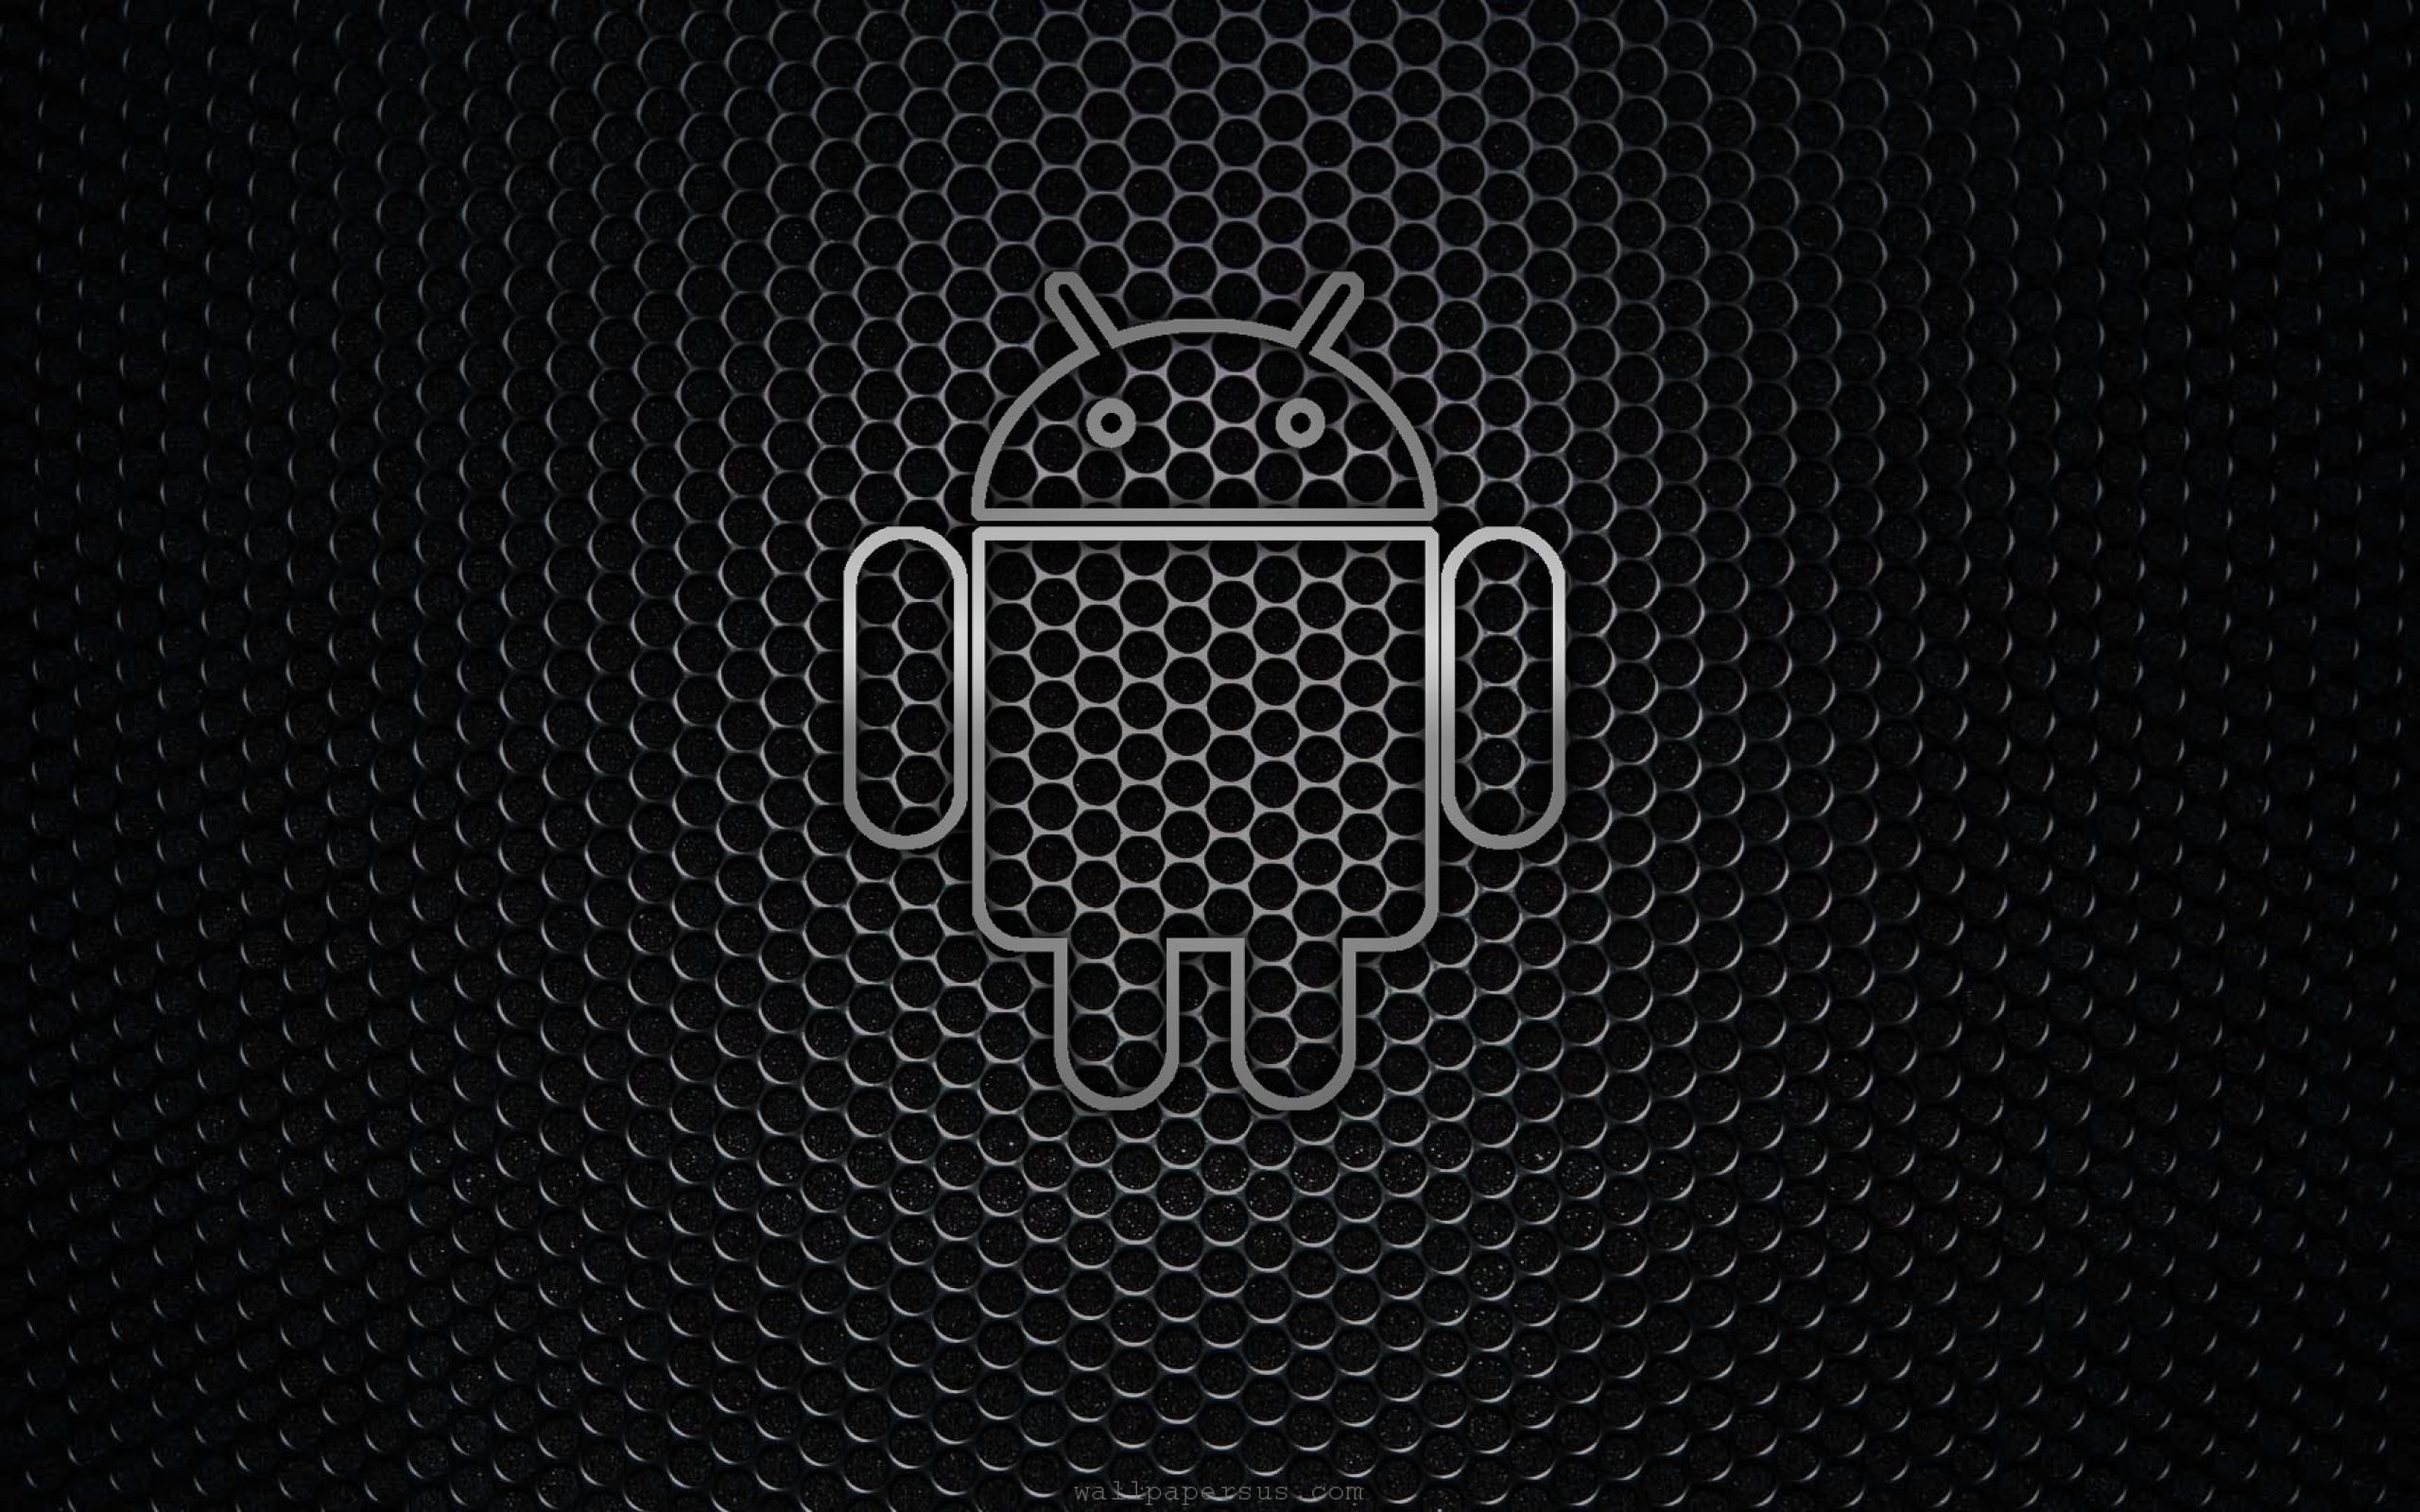 Android Dark Wallpaper (65+ images)